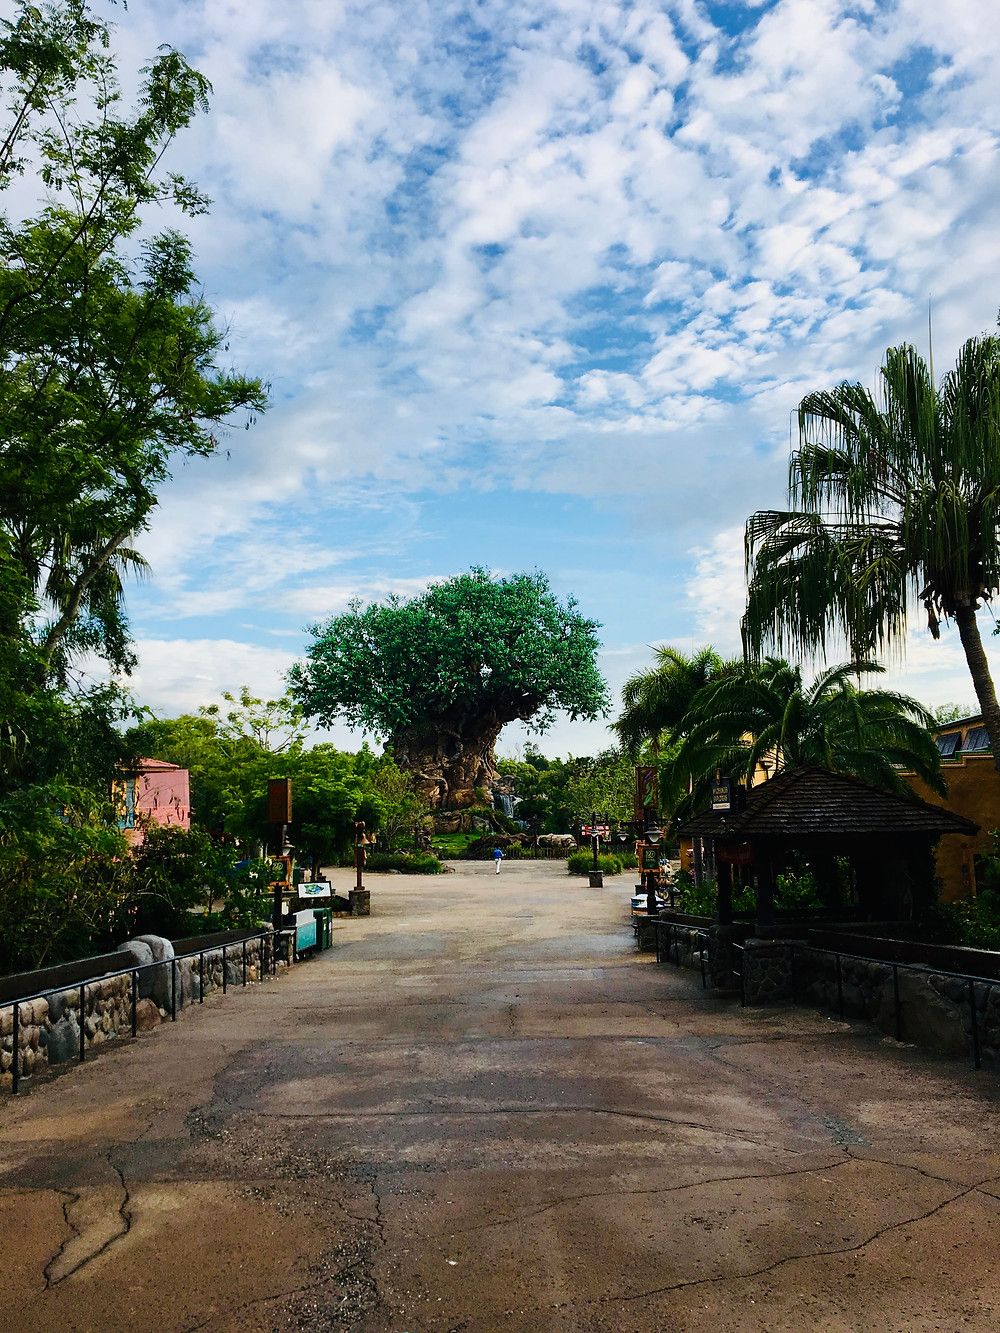 A complete empty Animal Kingdom at Rope Drop, view of the Tree of Life at Disney World